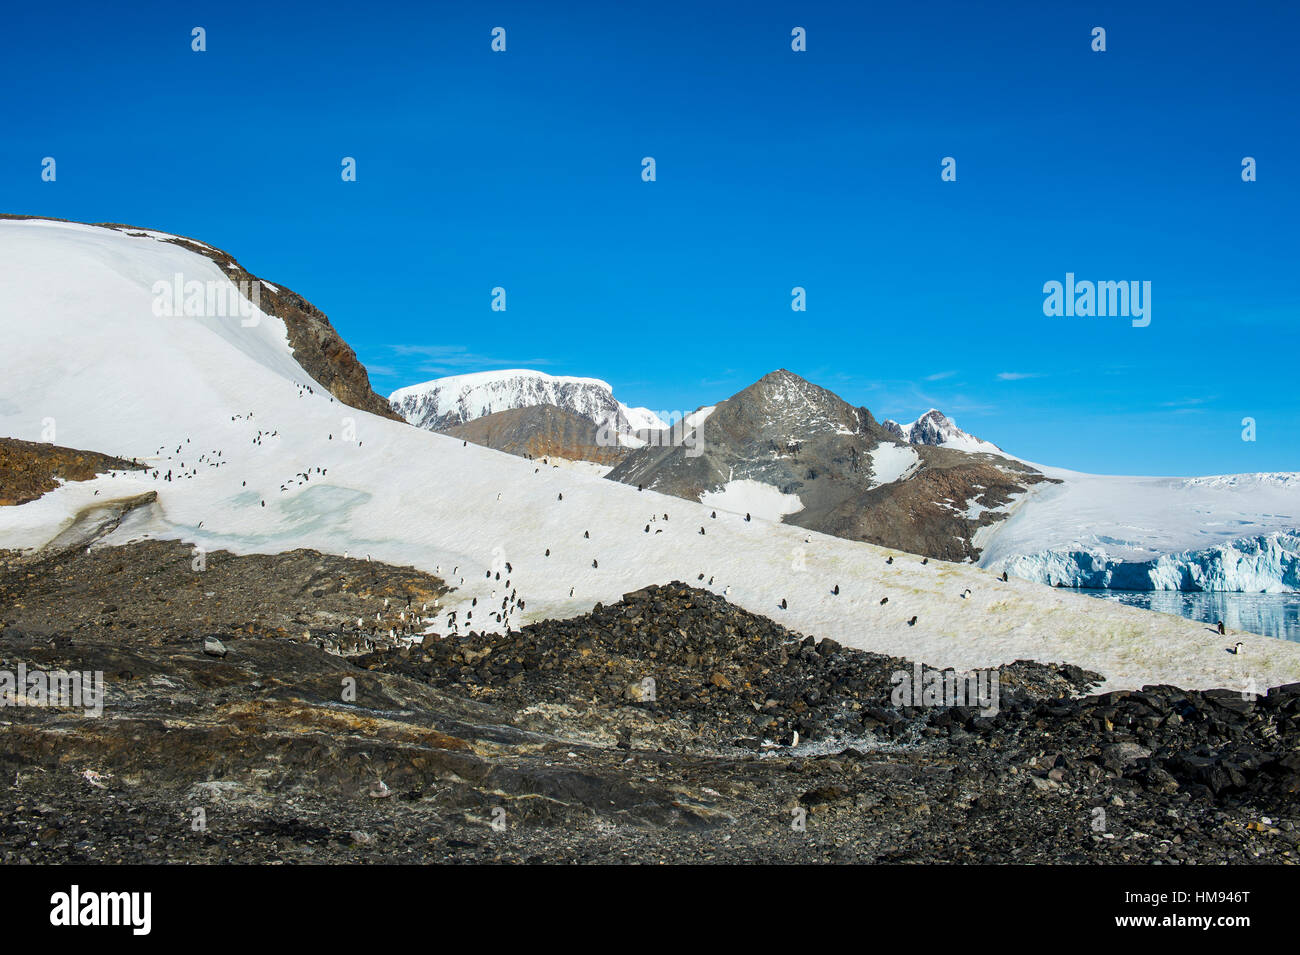 Adelie penguin (Pygoscelis adeliae) colony in Hope Bay, Antarctica, Polar Regions Stock Photo